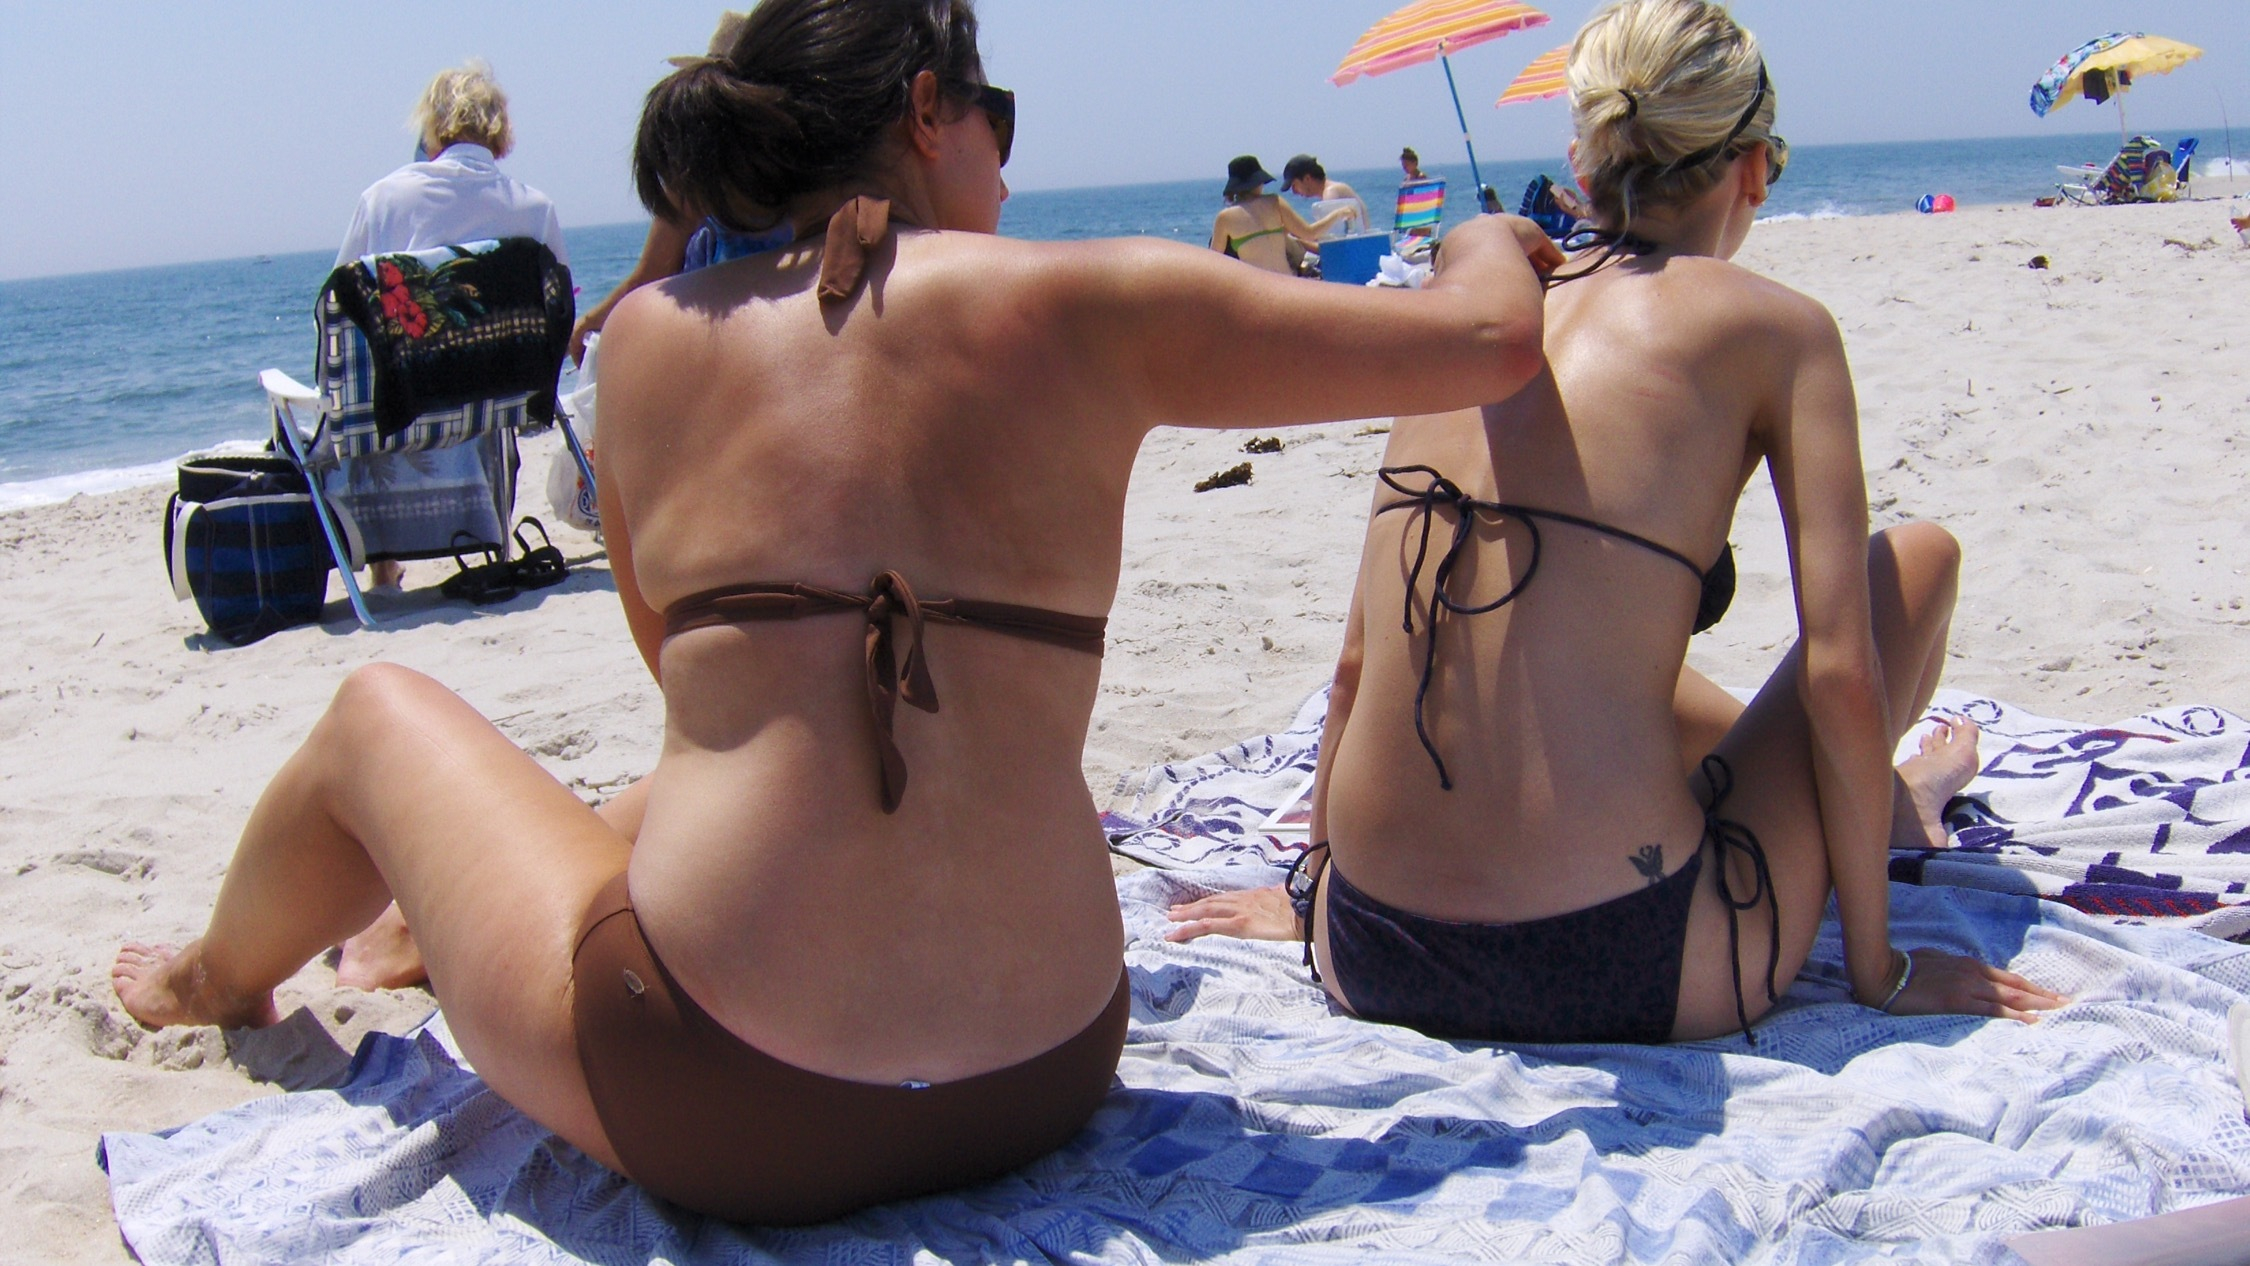 Putting on sunscreen at beach